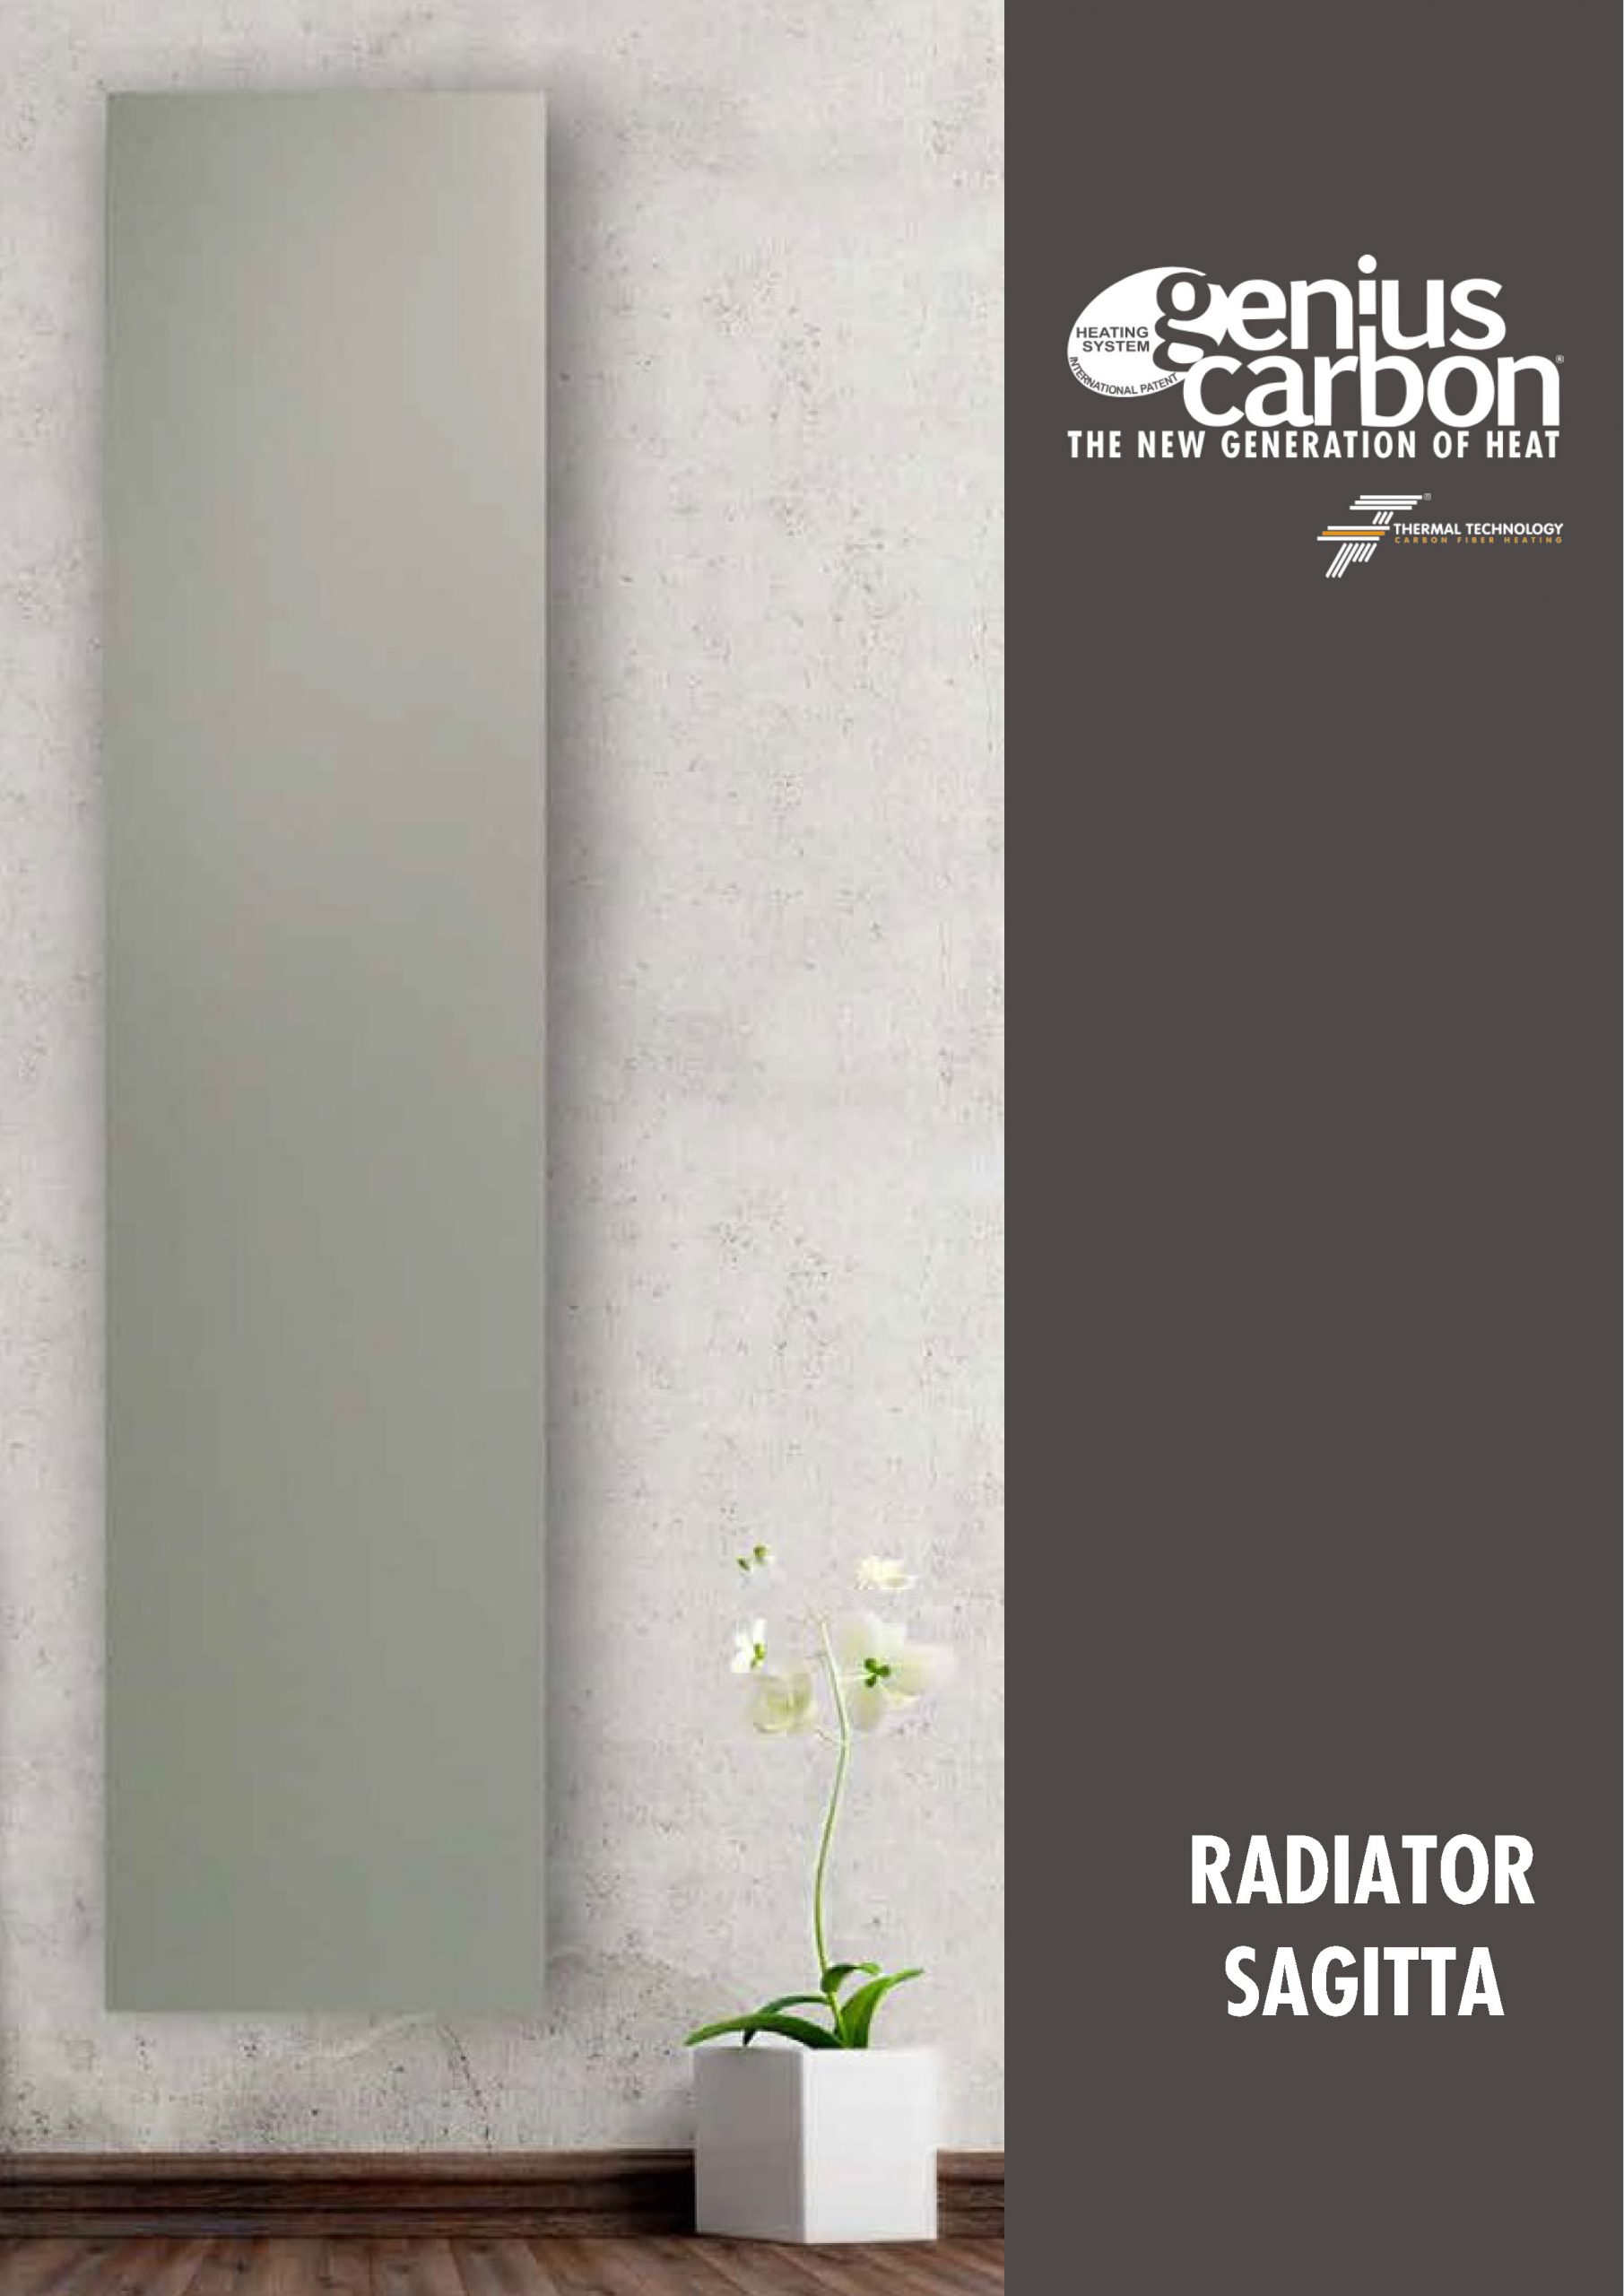 https://thermaltechnology.ro/wp-content/uploads/2020/03/RADIATOR-SAGITTA_RD06_RO_Page_1-scaled.jpg